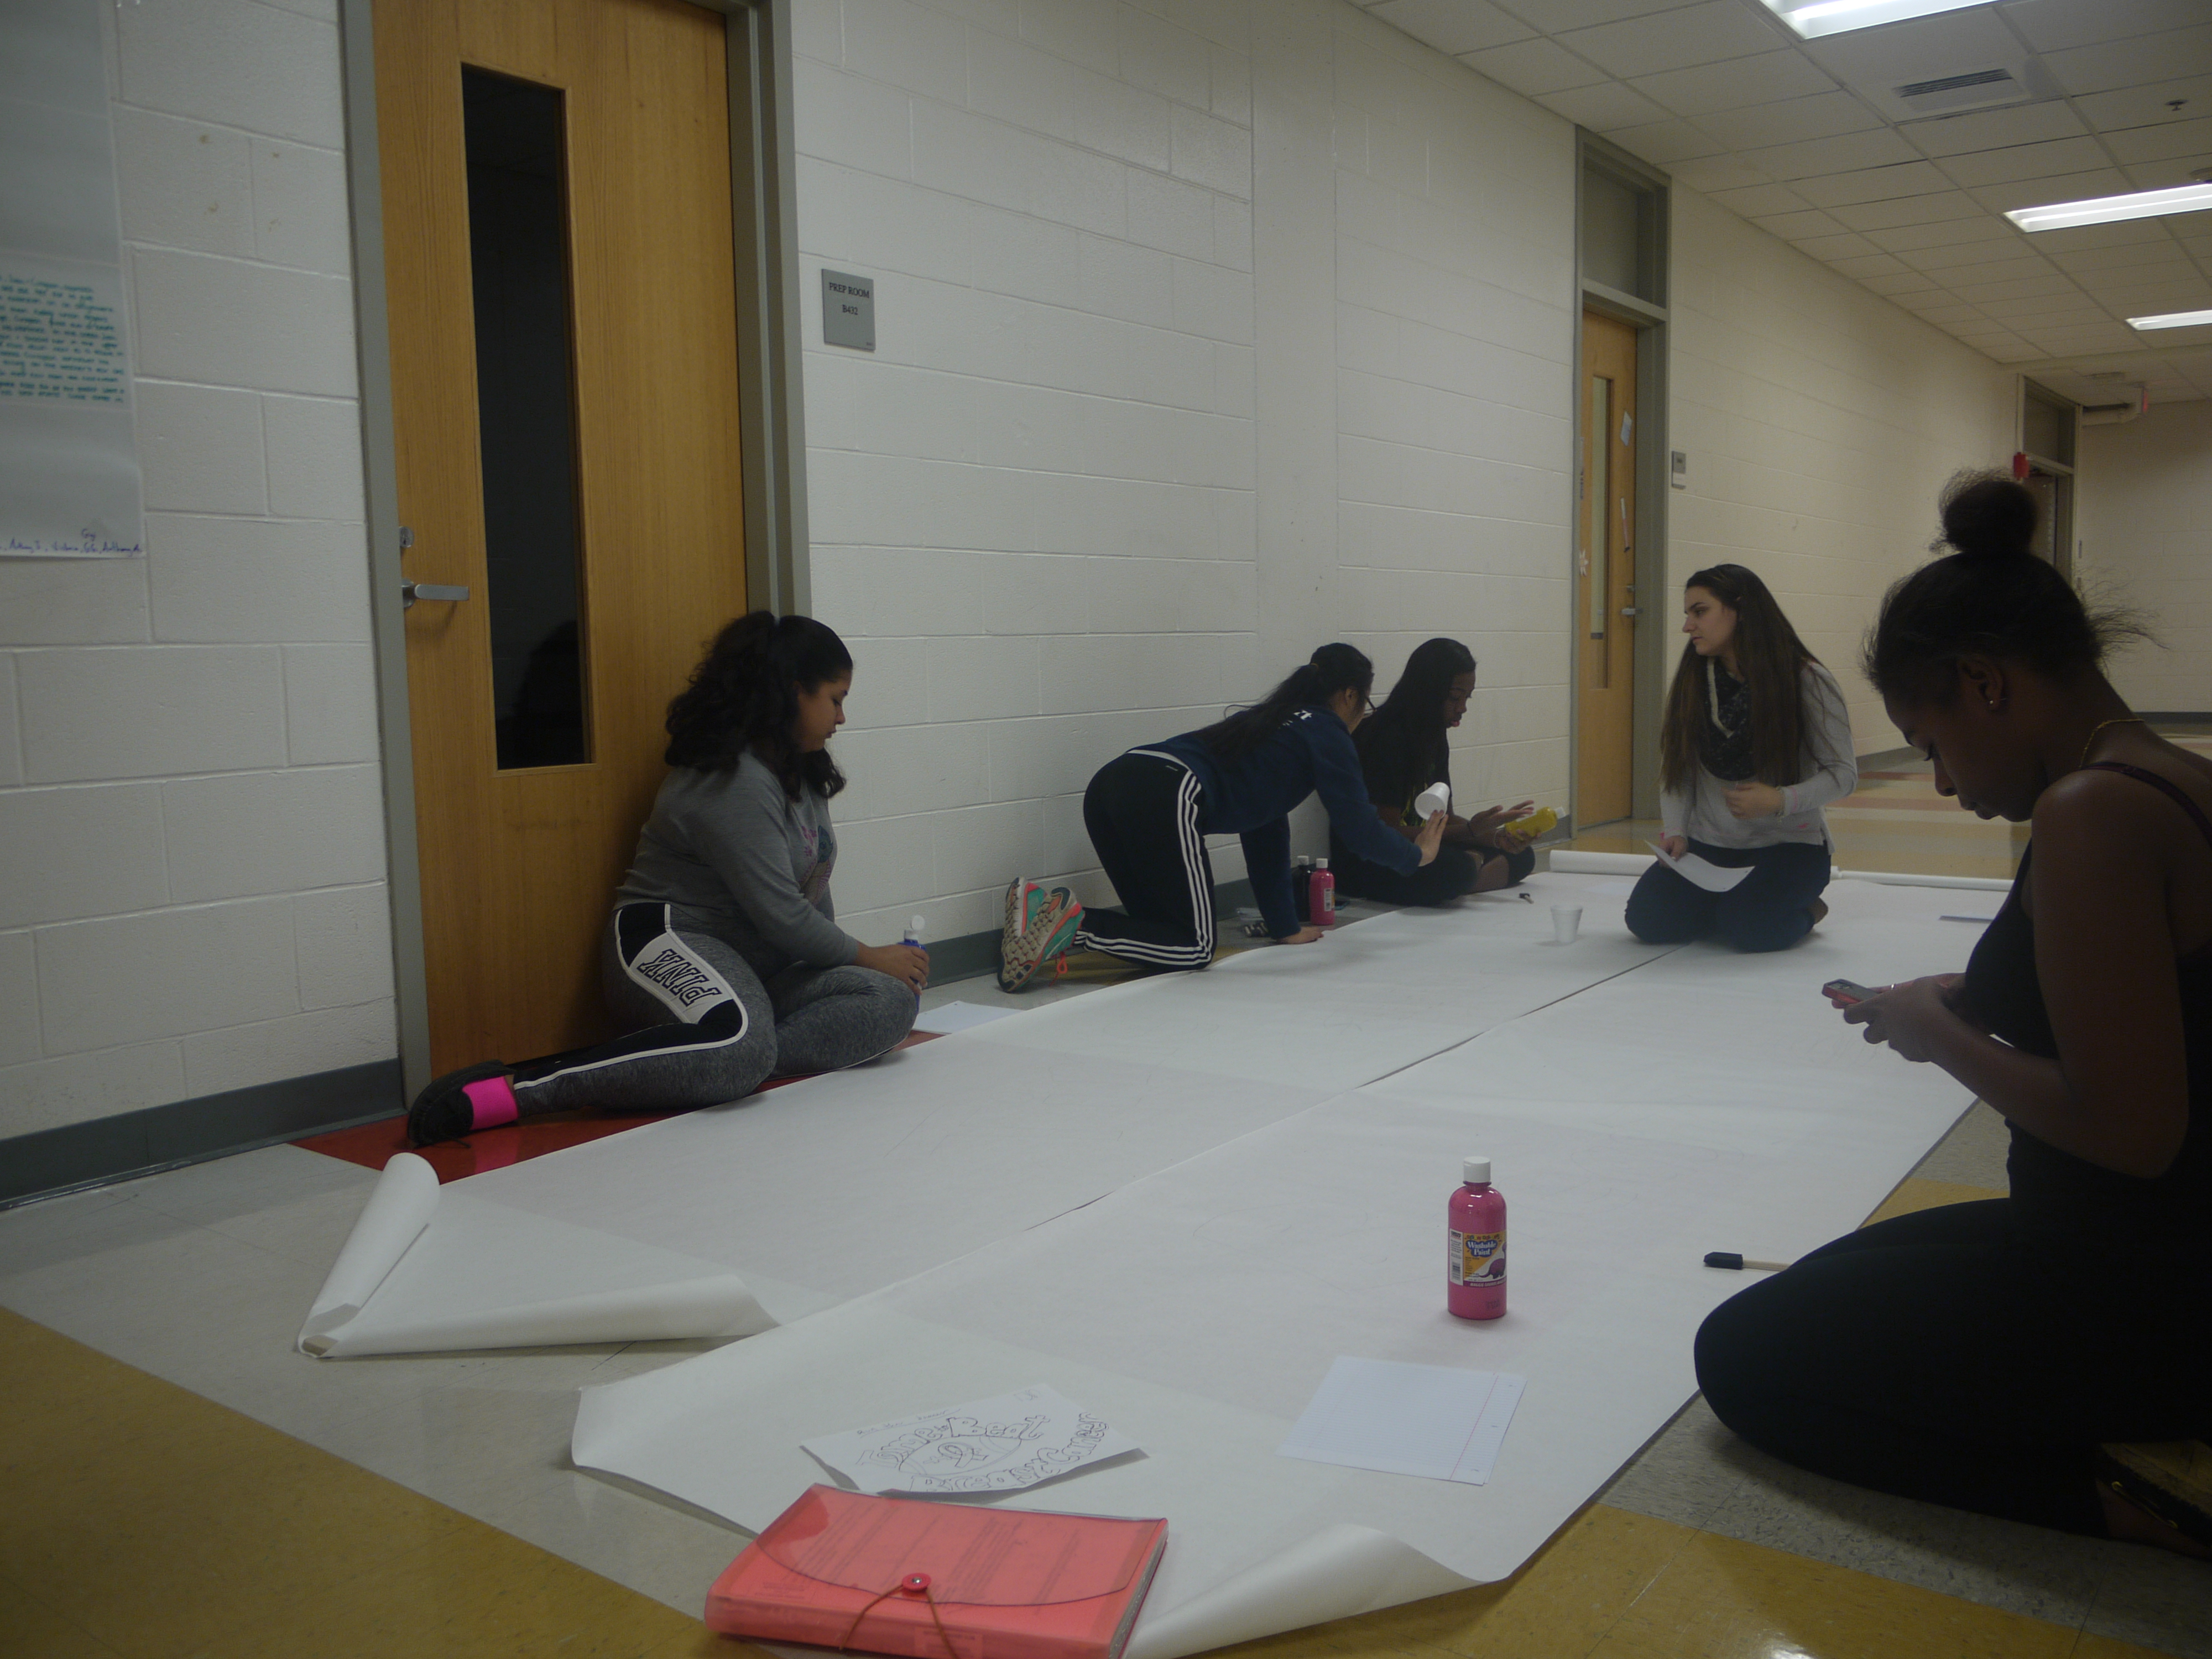 Malden Against Cancer members making the banner for the pink-out football game. Photo taken by Josandy Jeune.